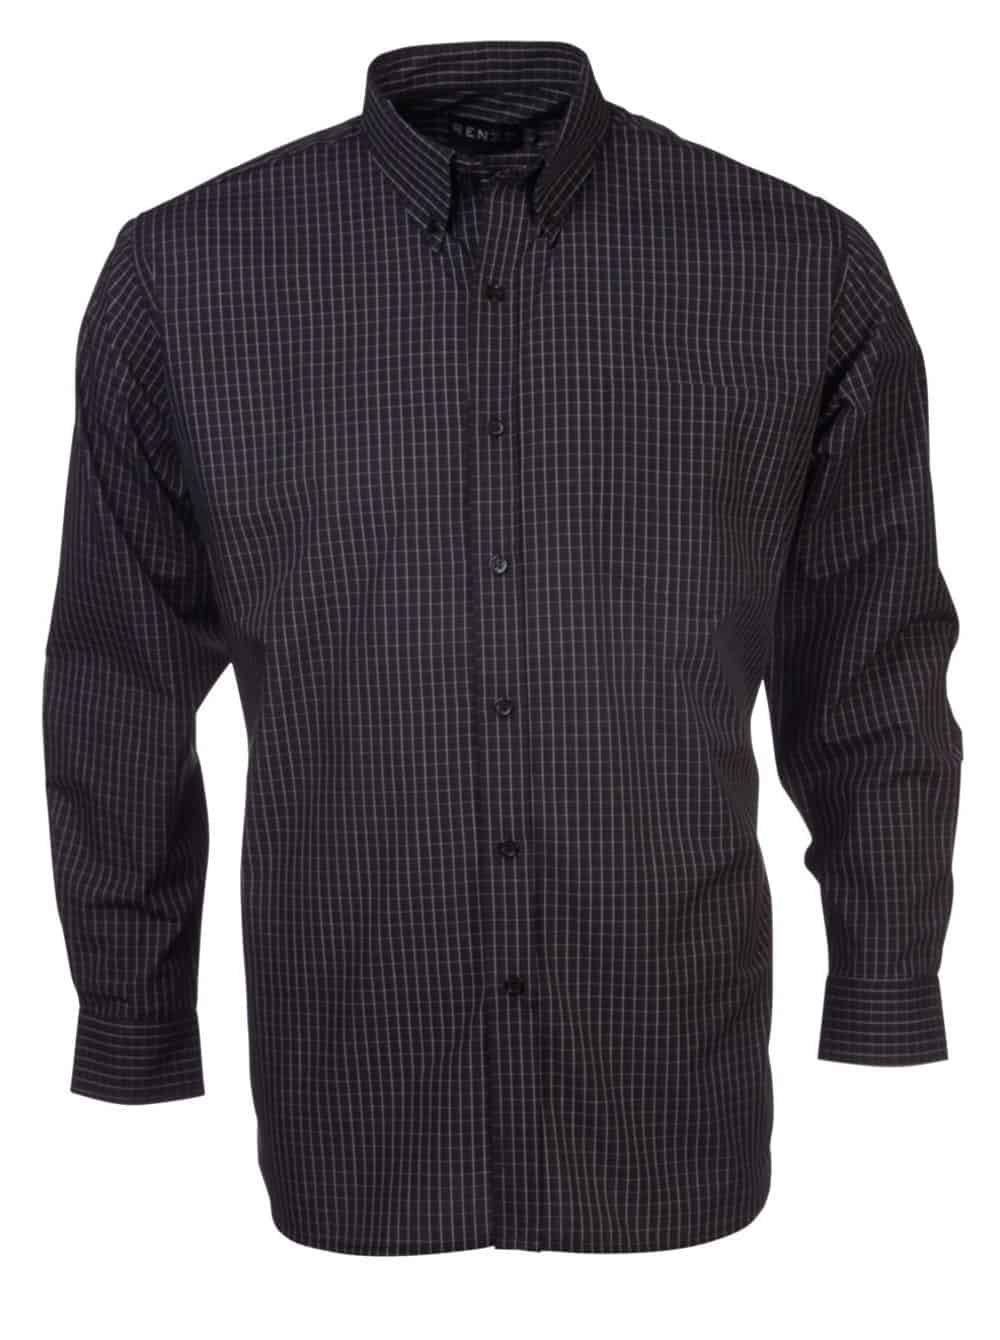 Checked Shirt WS09L Lounge Shirts and Blouses